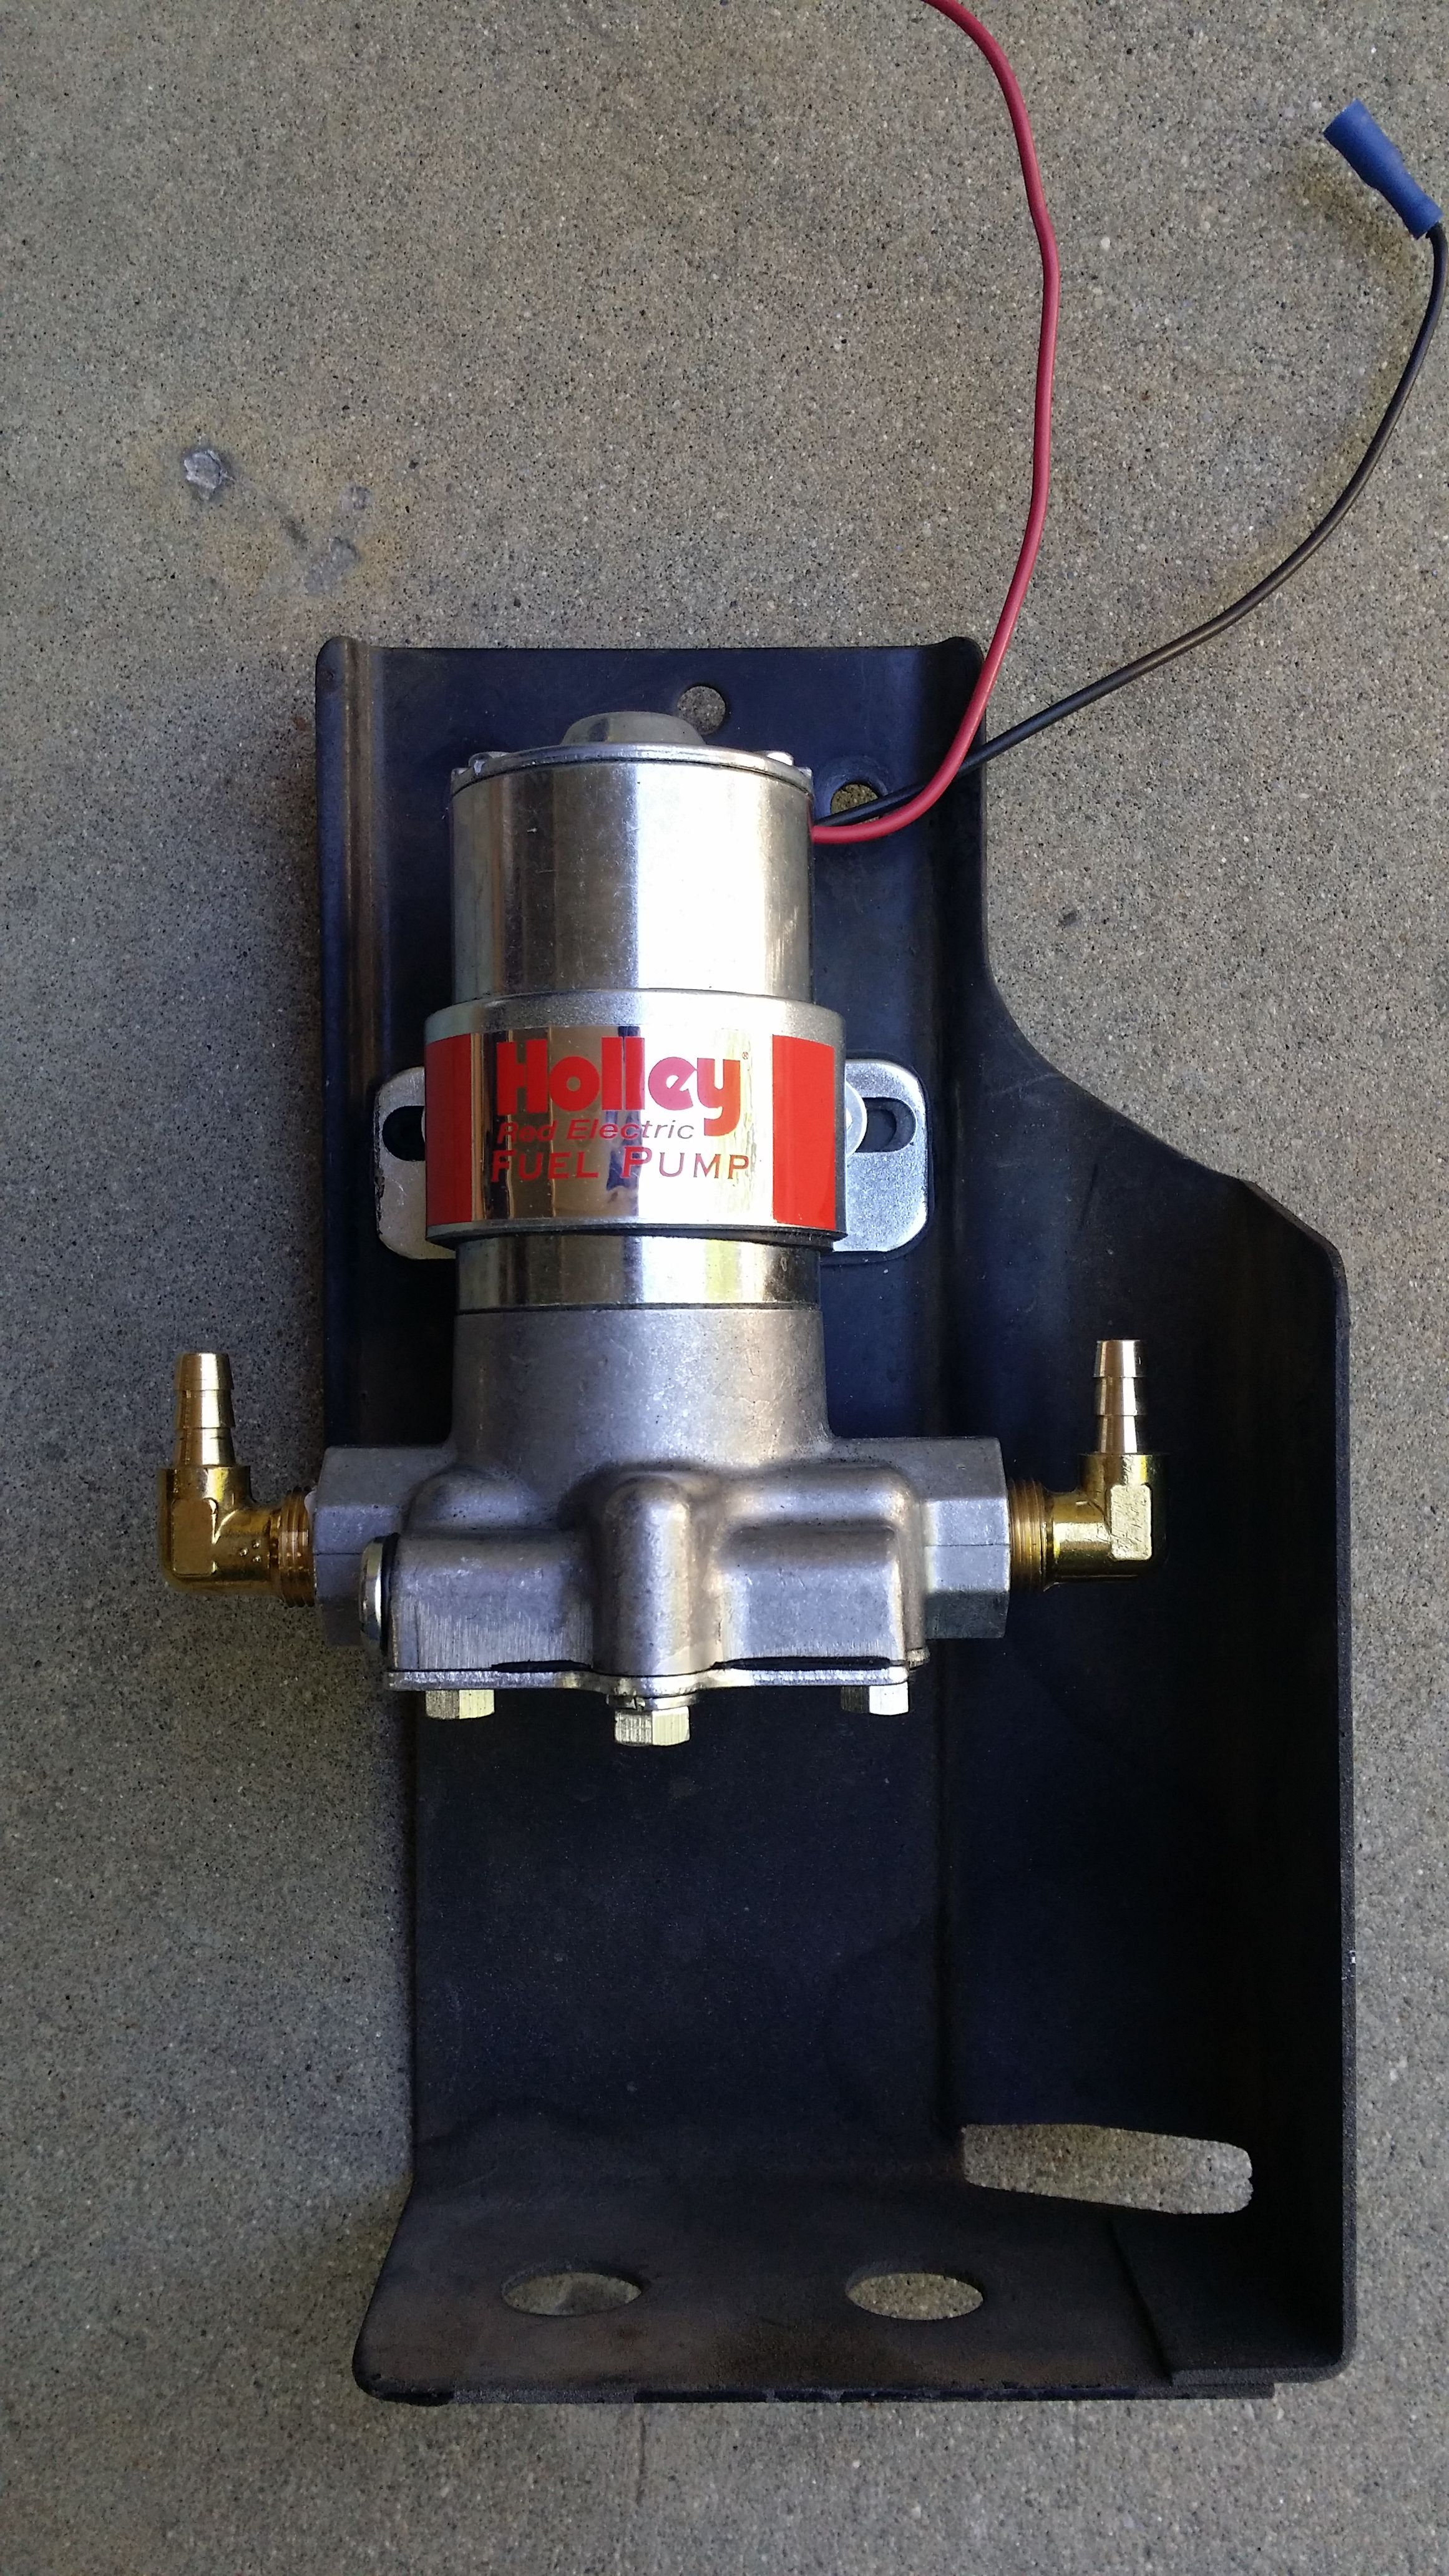 Holley fuel pump, replacing the stock fuel pump. The 1973 240Z came ...